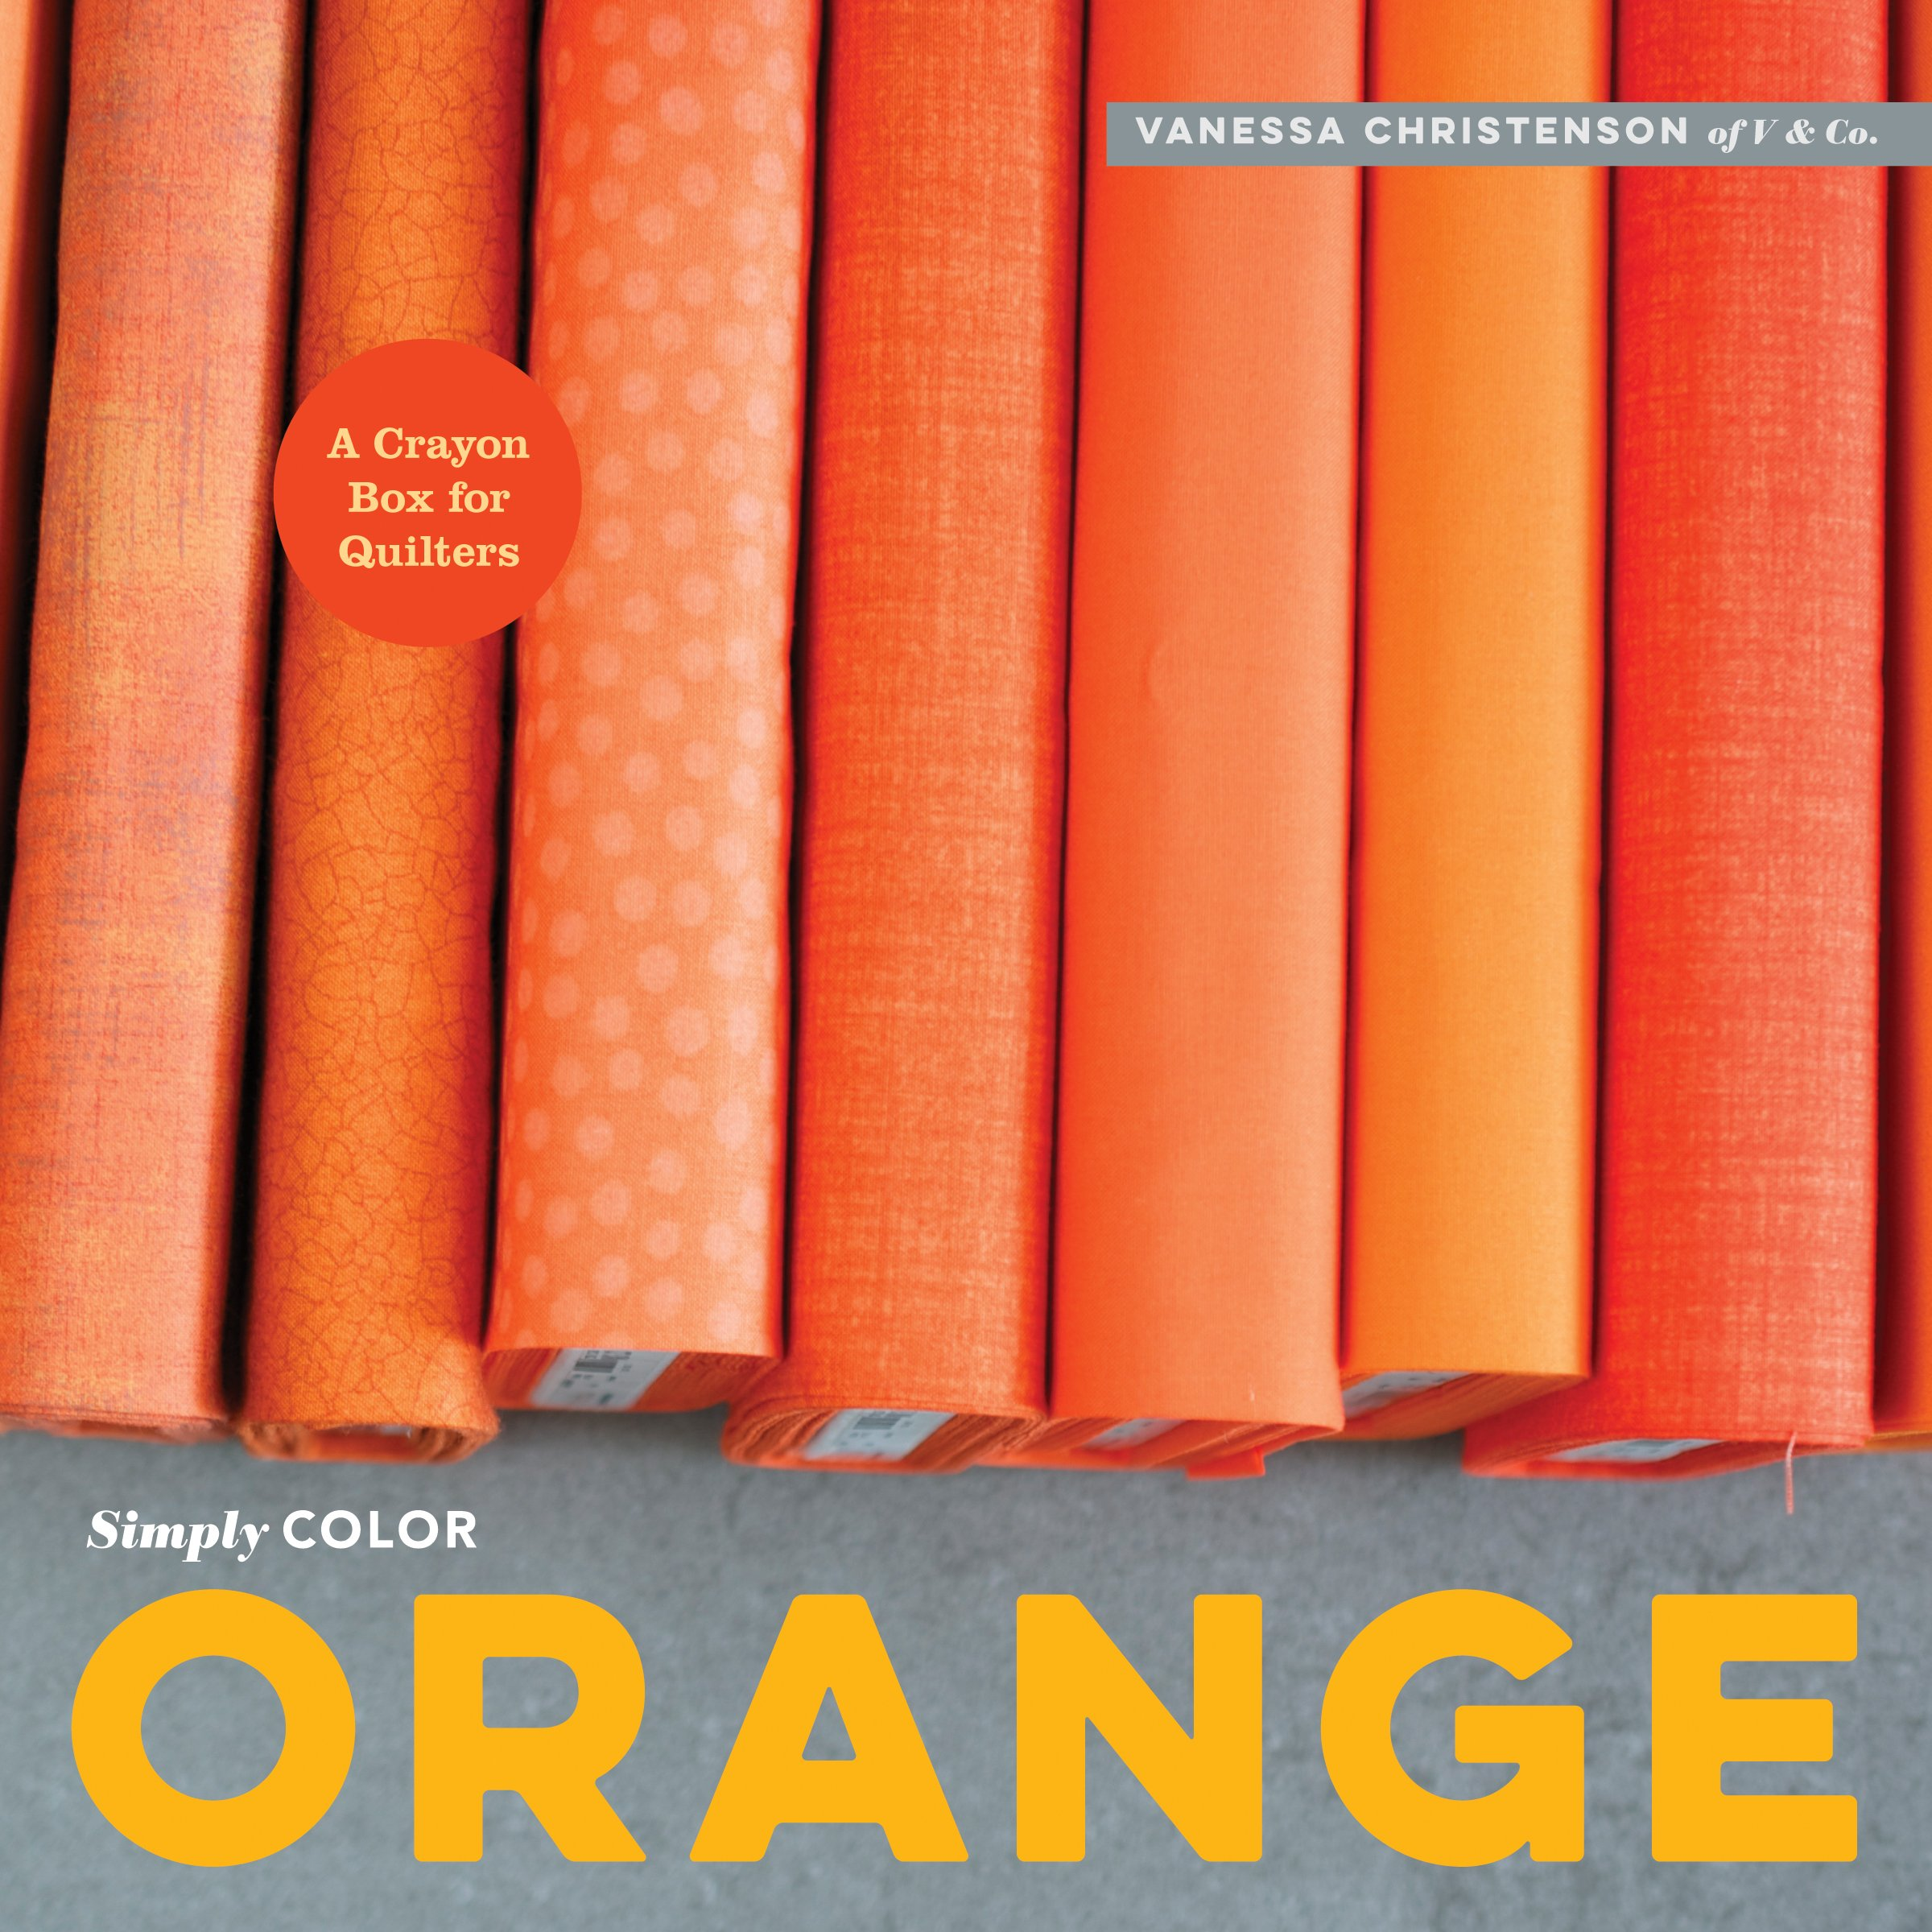 Download Simply Color: Orange: A Crayon Box for Quilters pdf epub